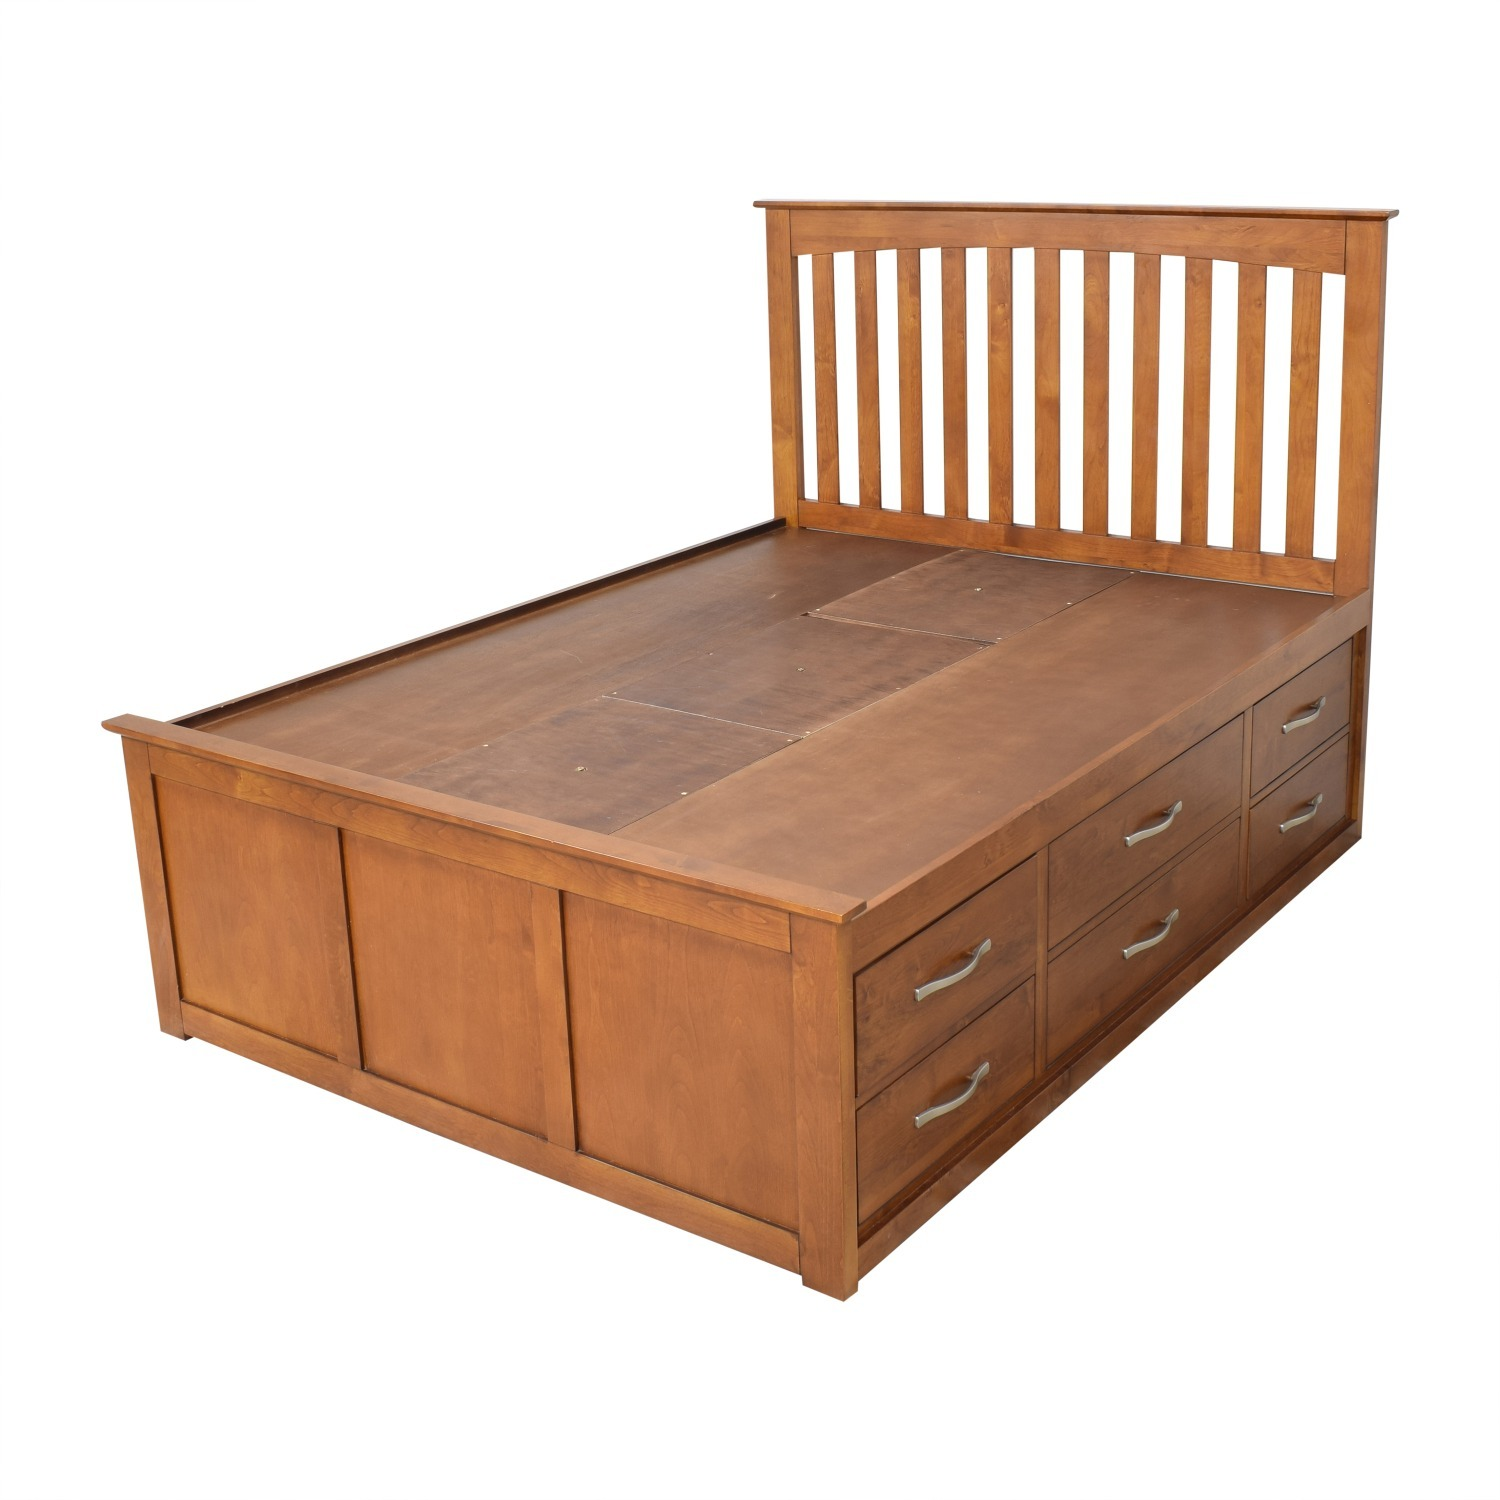 Raymour & Flanigan King Size Bed - image-0